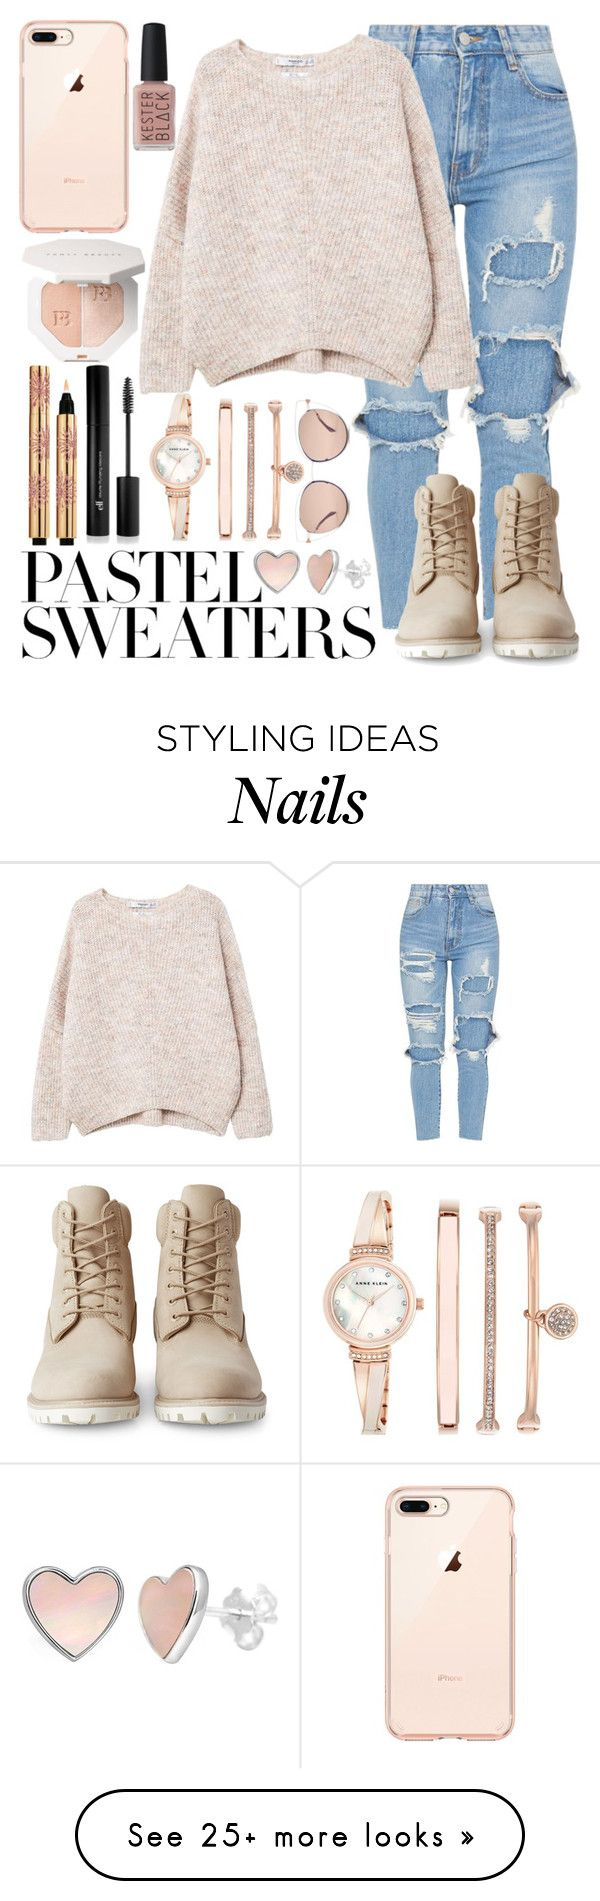 """pastel sweater"" by beingmyselfaf on Polyvore featuring Timberland, MANGO, Kester Black, Yves Saint Laurent, Forever 21, Anne Klein, Fendi and pastelsweaters"